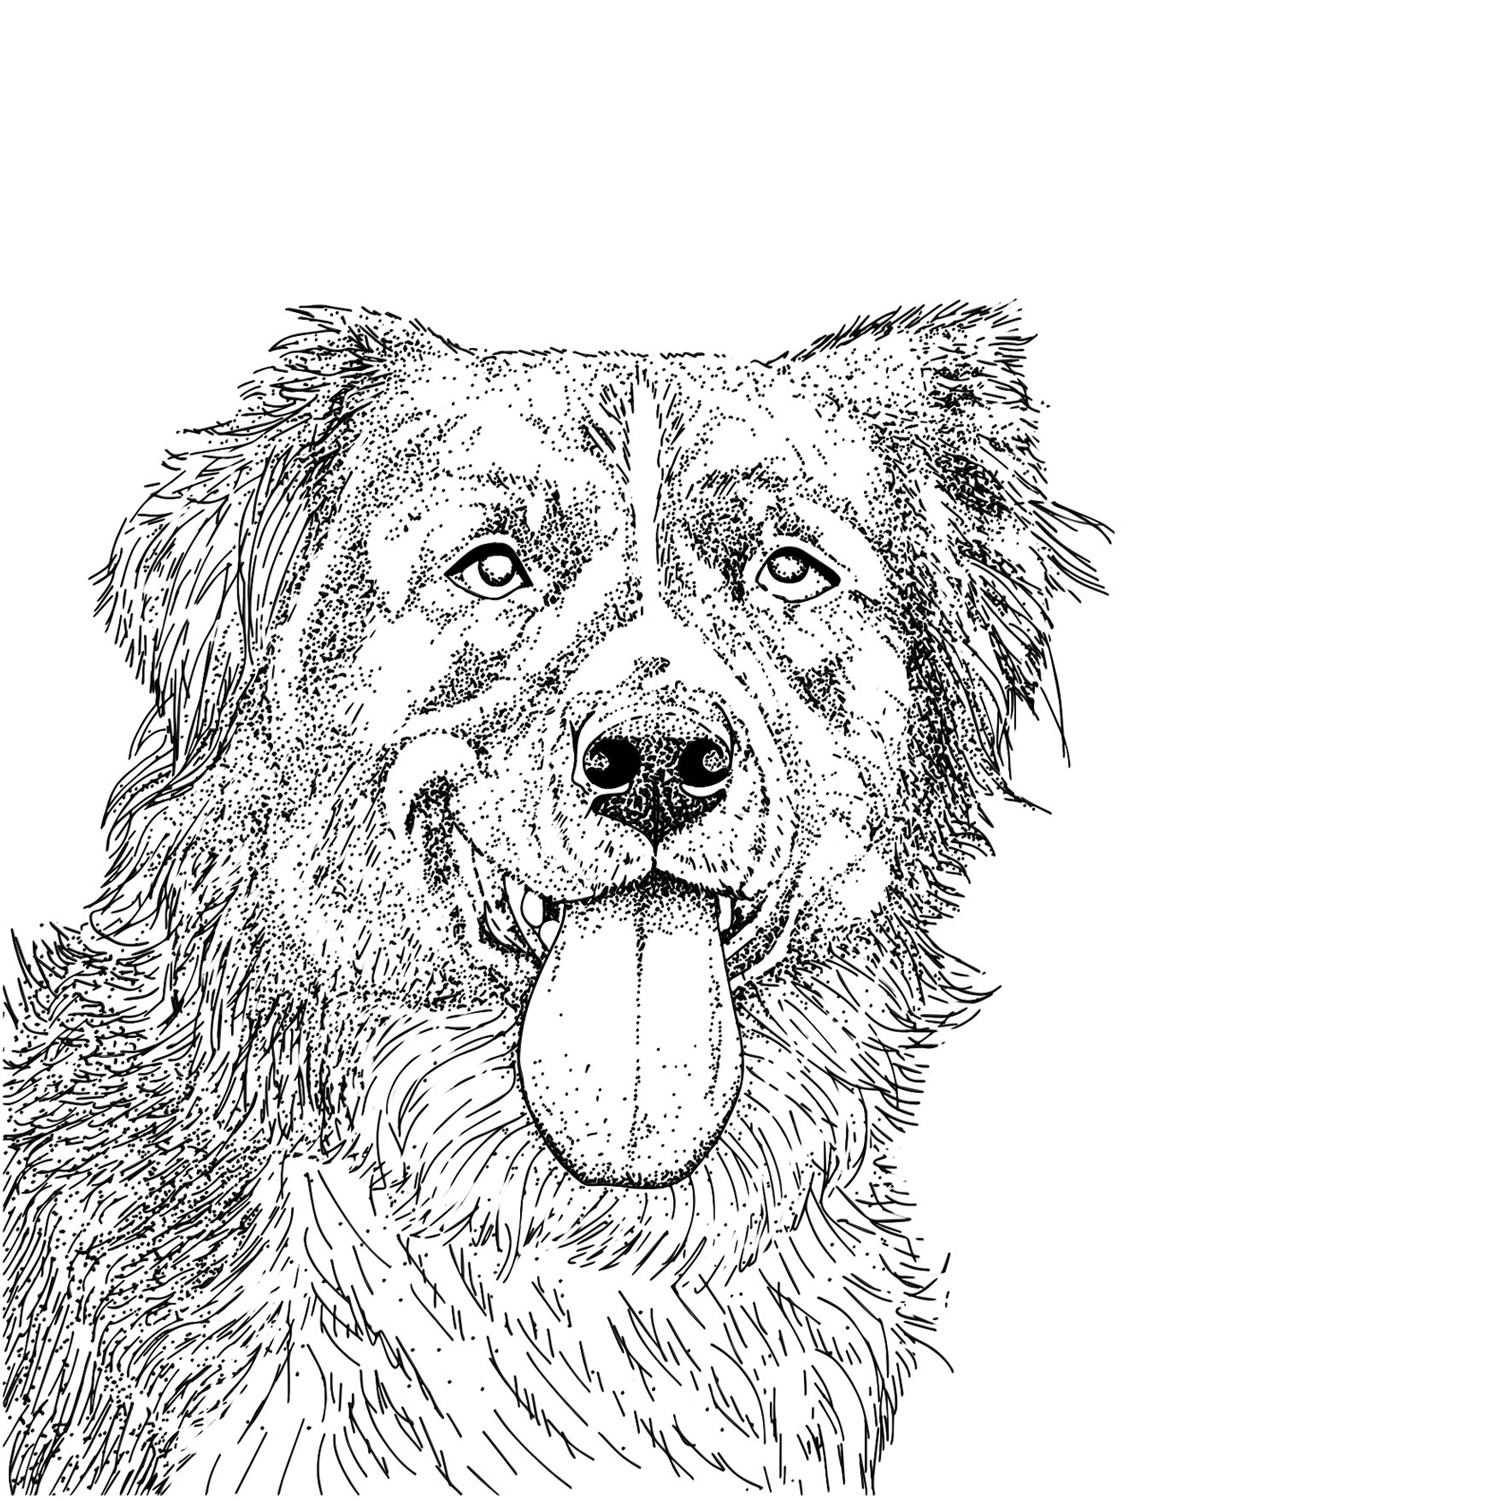 rbtq_Illustration_Seiser_Illustratorin_Hamburg_Fantasie_Hund_Karte_dots_Titel.jpg